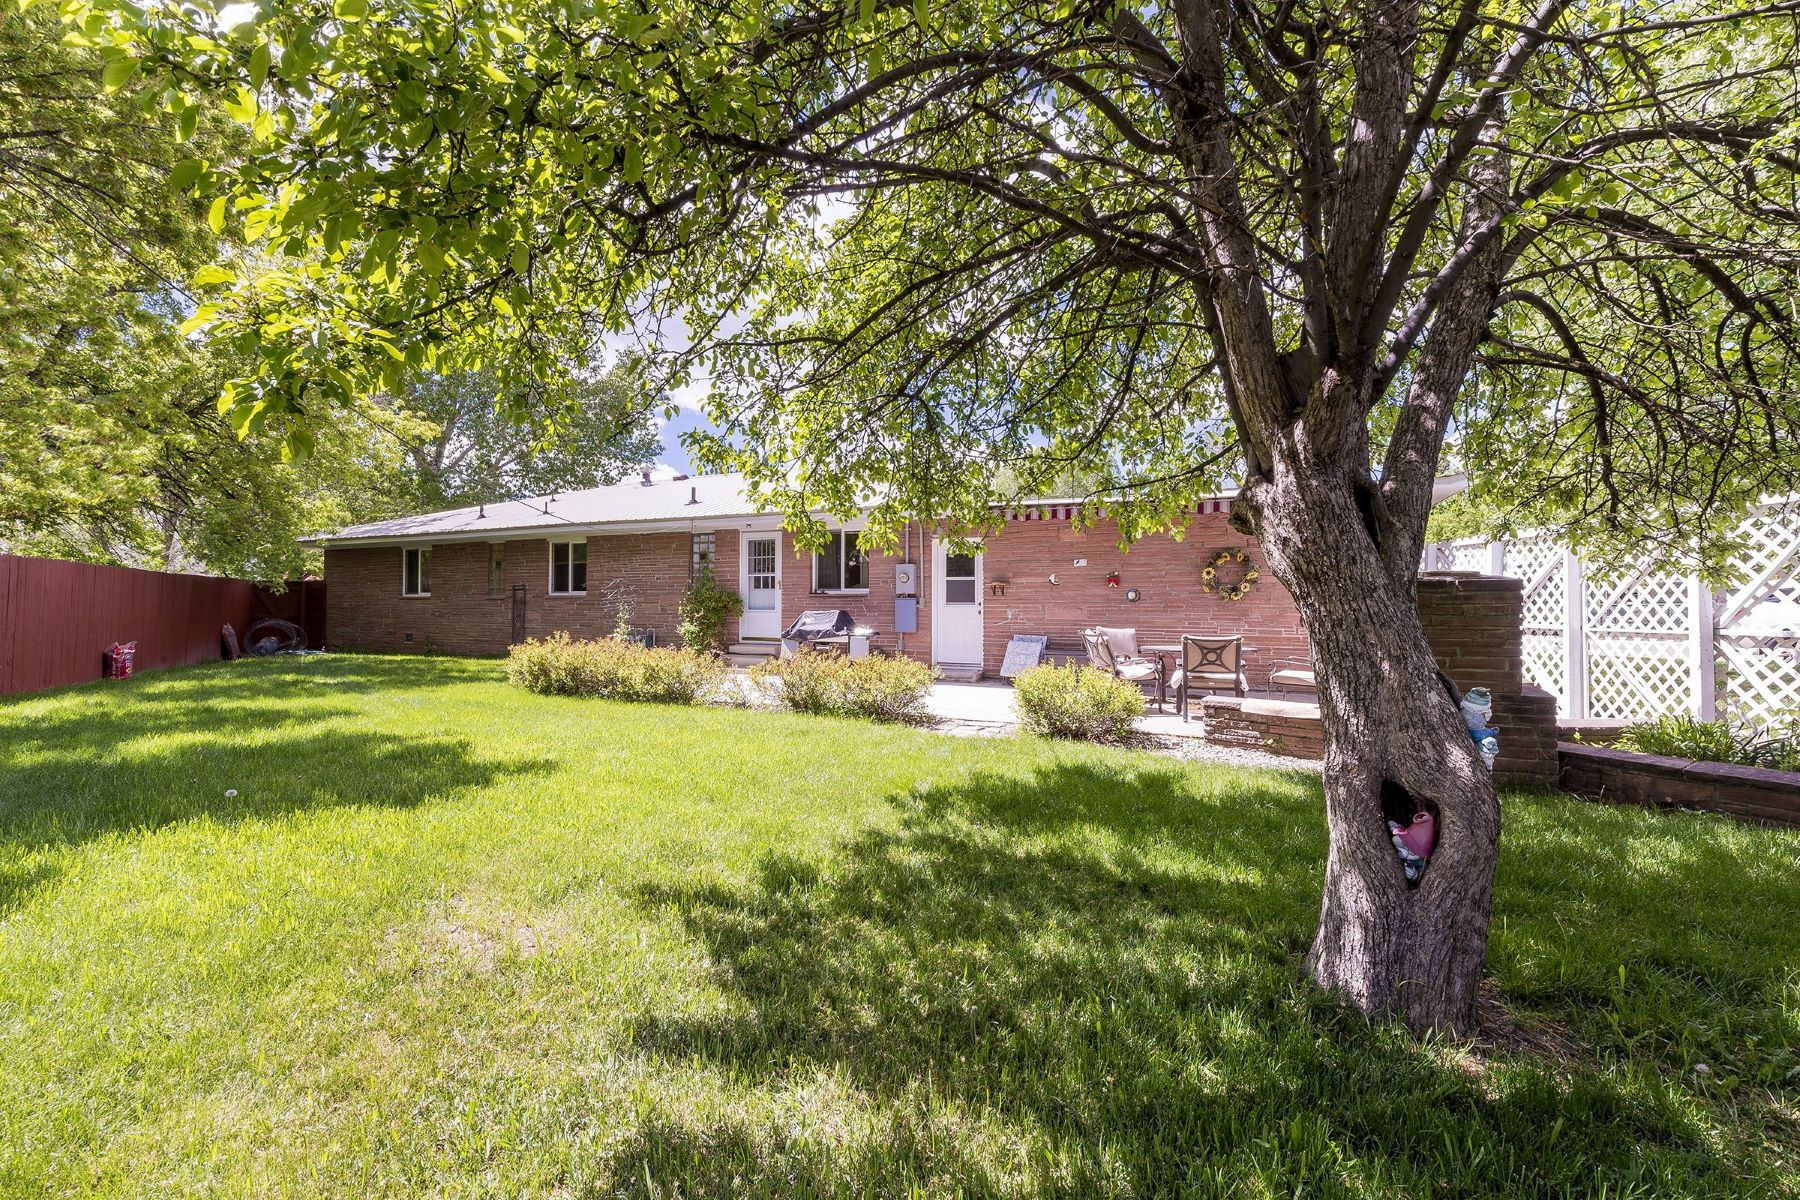 Additional photo for property listing at Immaculate Classic Mid-Century Ranch Home 689 Pershing St. Craig, Colorado 81625 United States